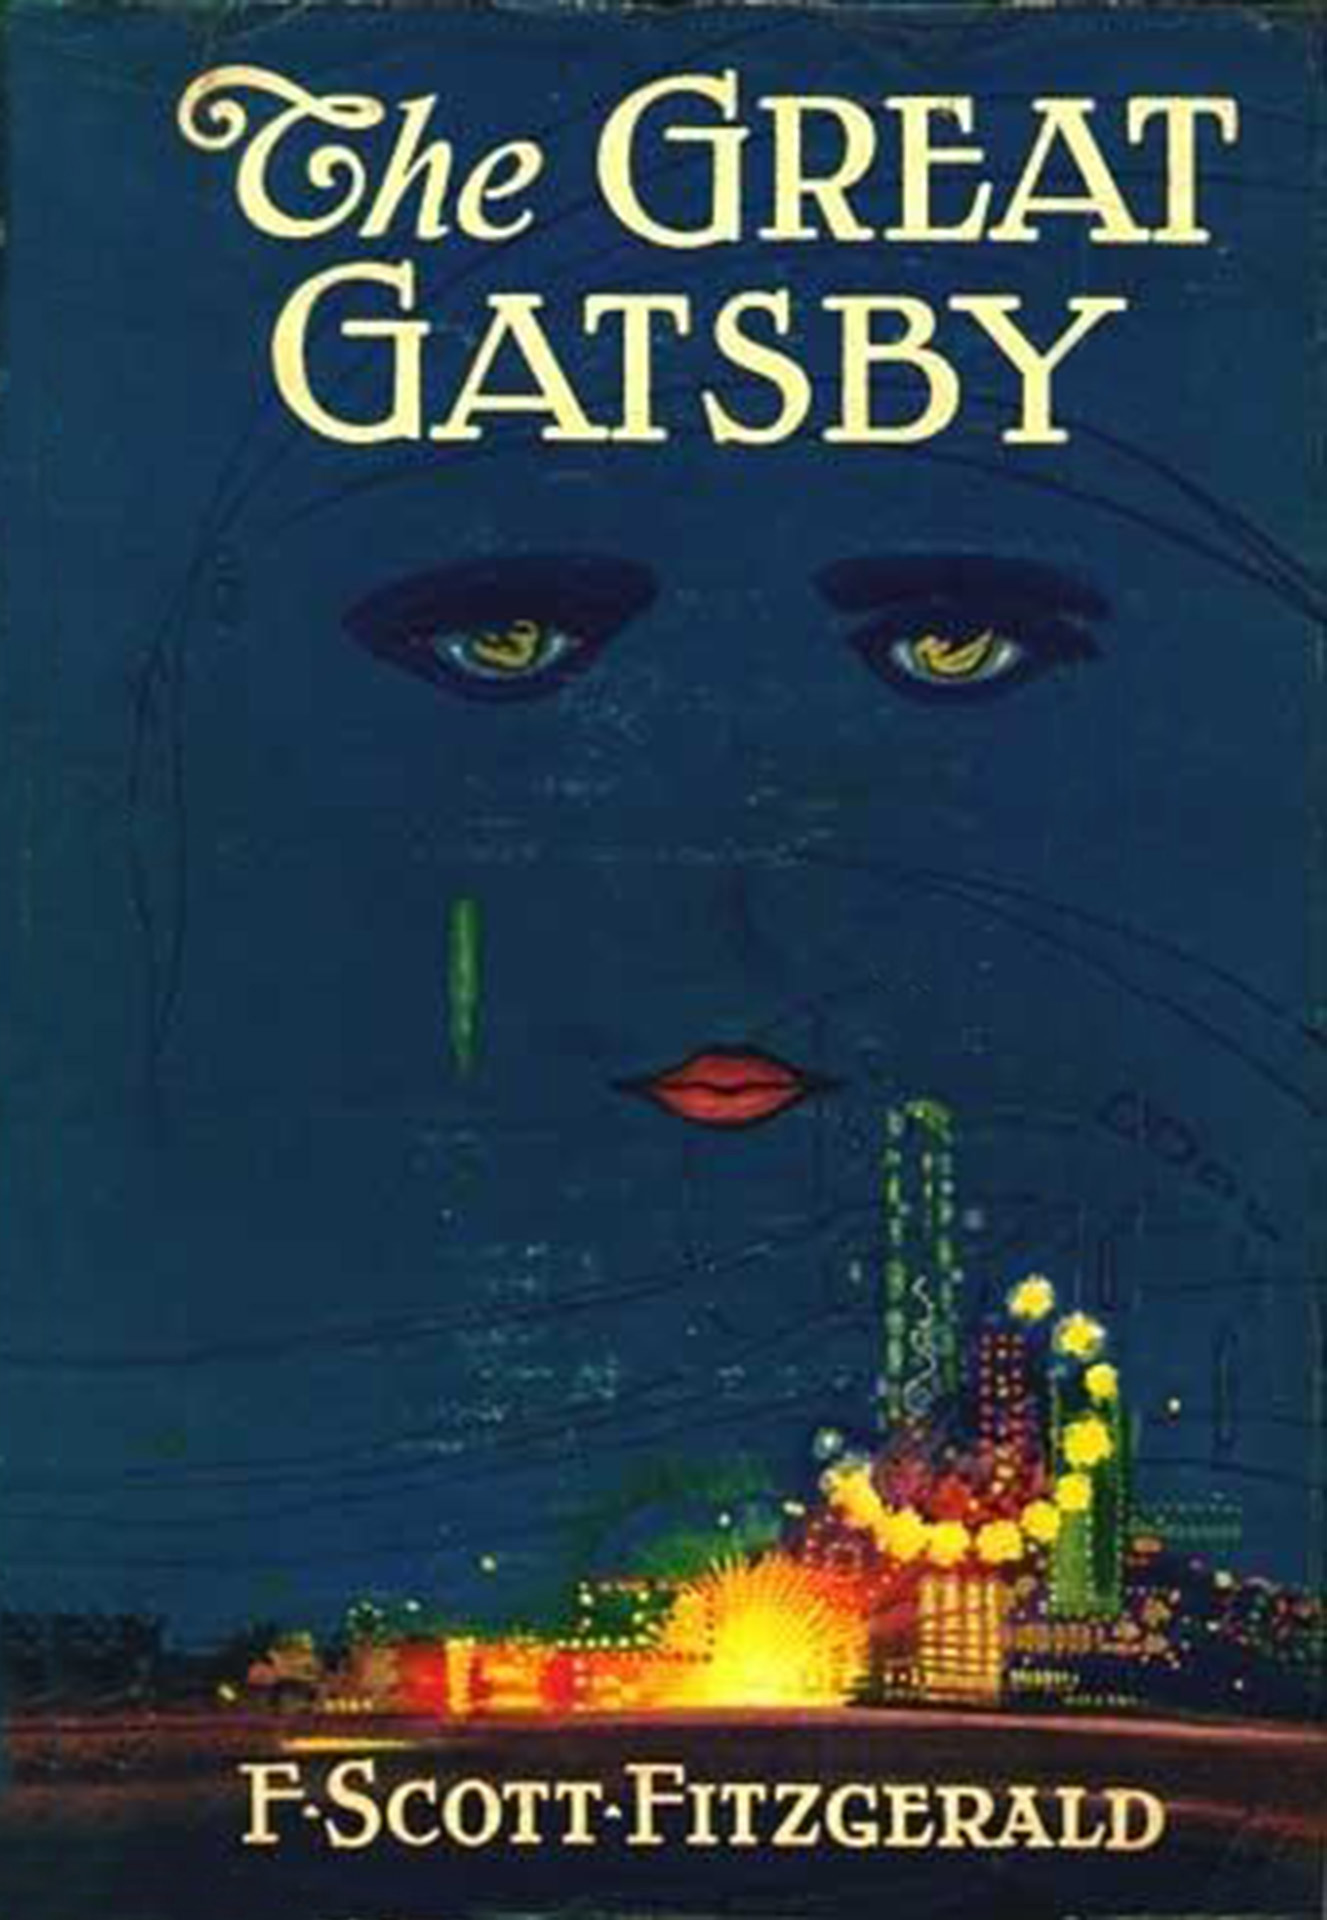 Frontispiece from The Great Gatsby (1925)